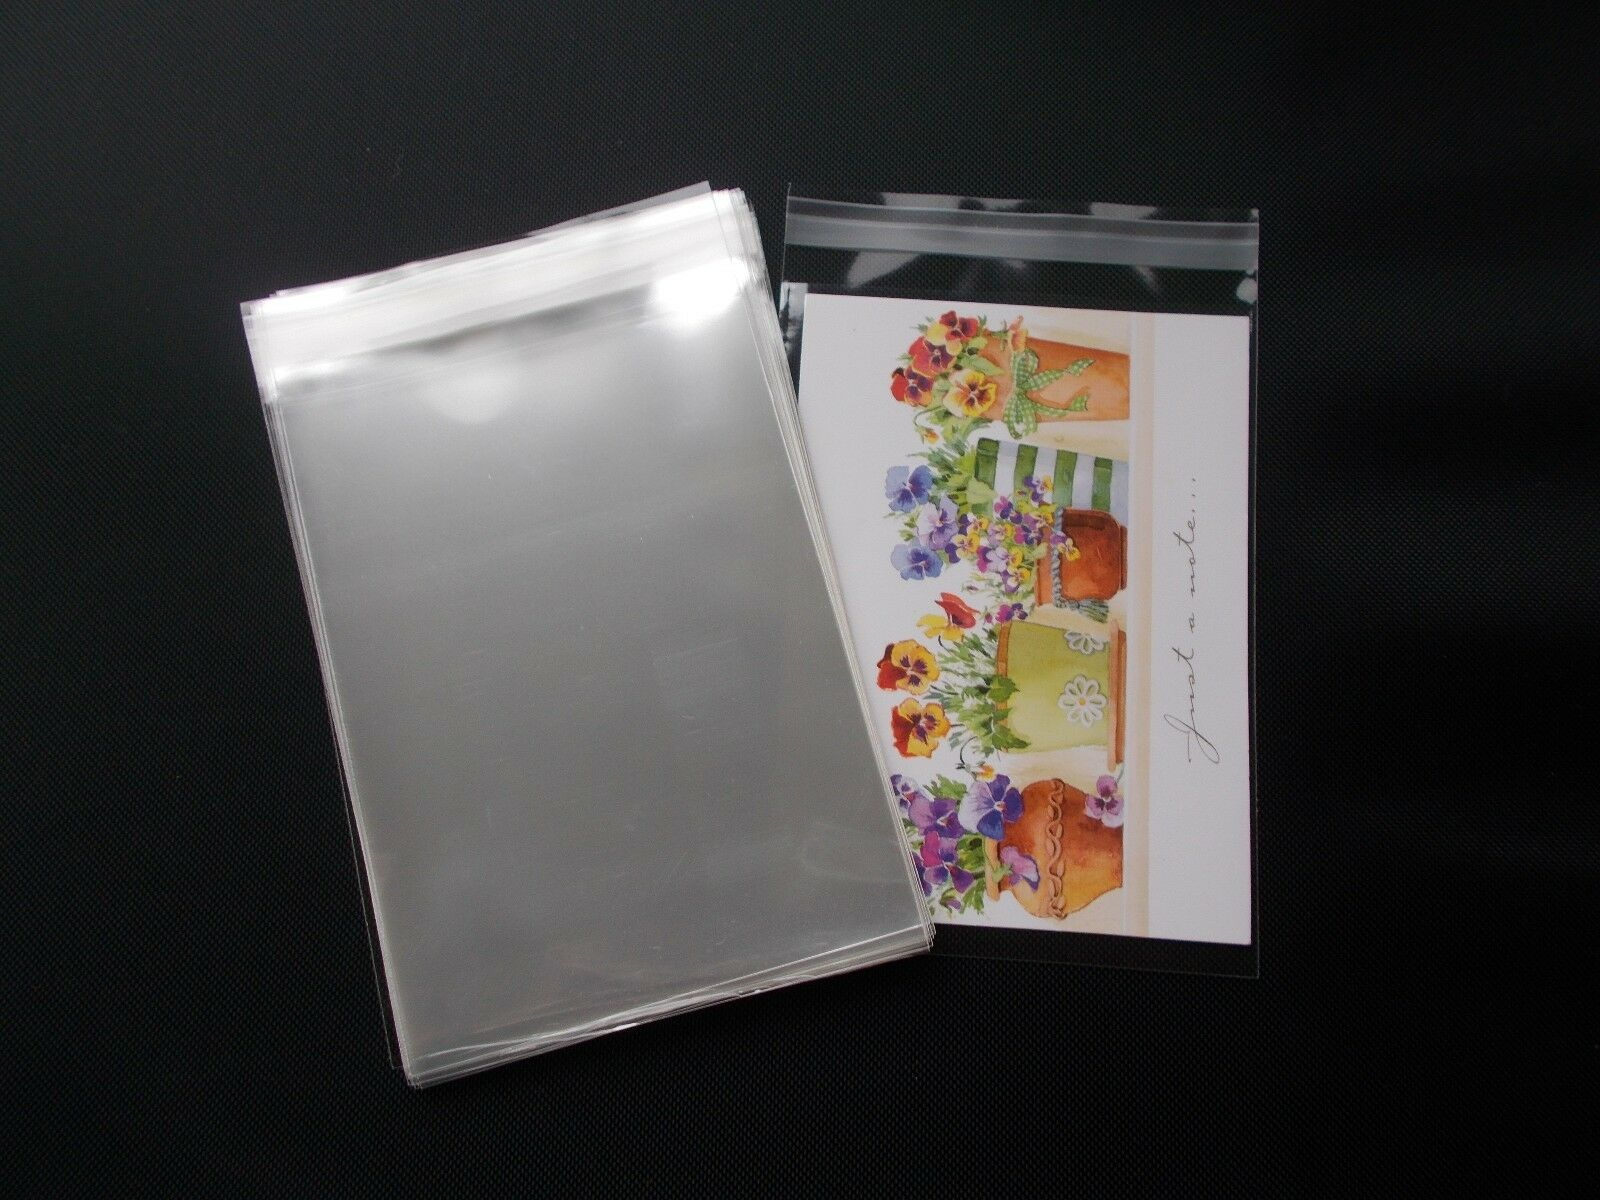 Greeting cards party supply 100 clear cello self seal bags sleeves envelopes 4 34 x 6 m4hsunfo